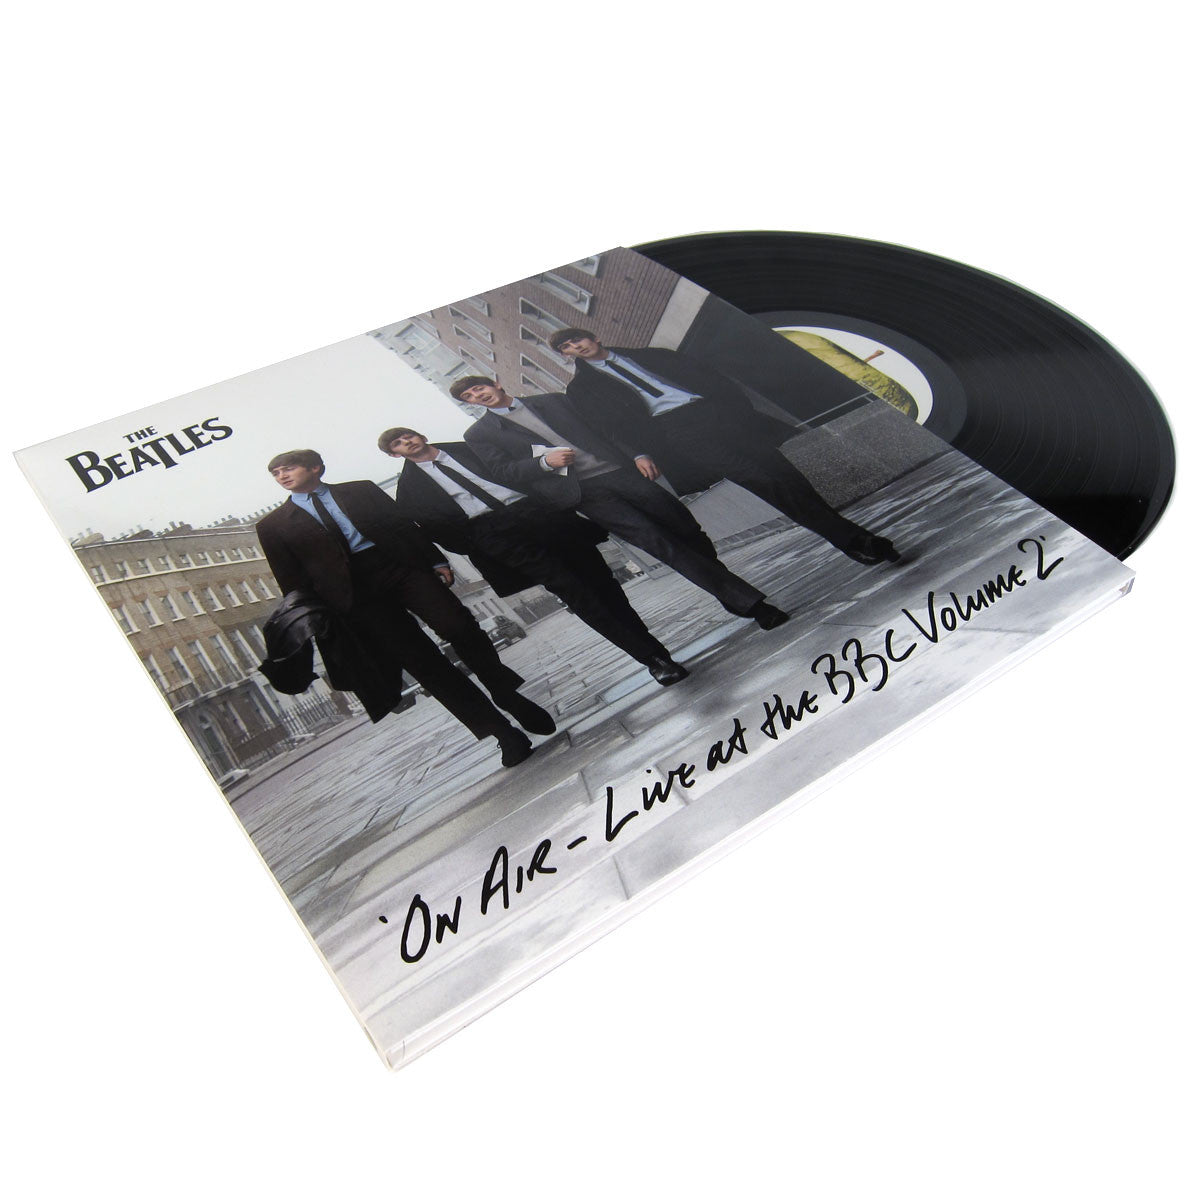 The Beatles: On Air - Live at the BBC Vol. 2 3LP